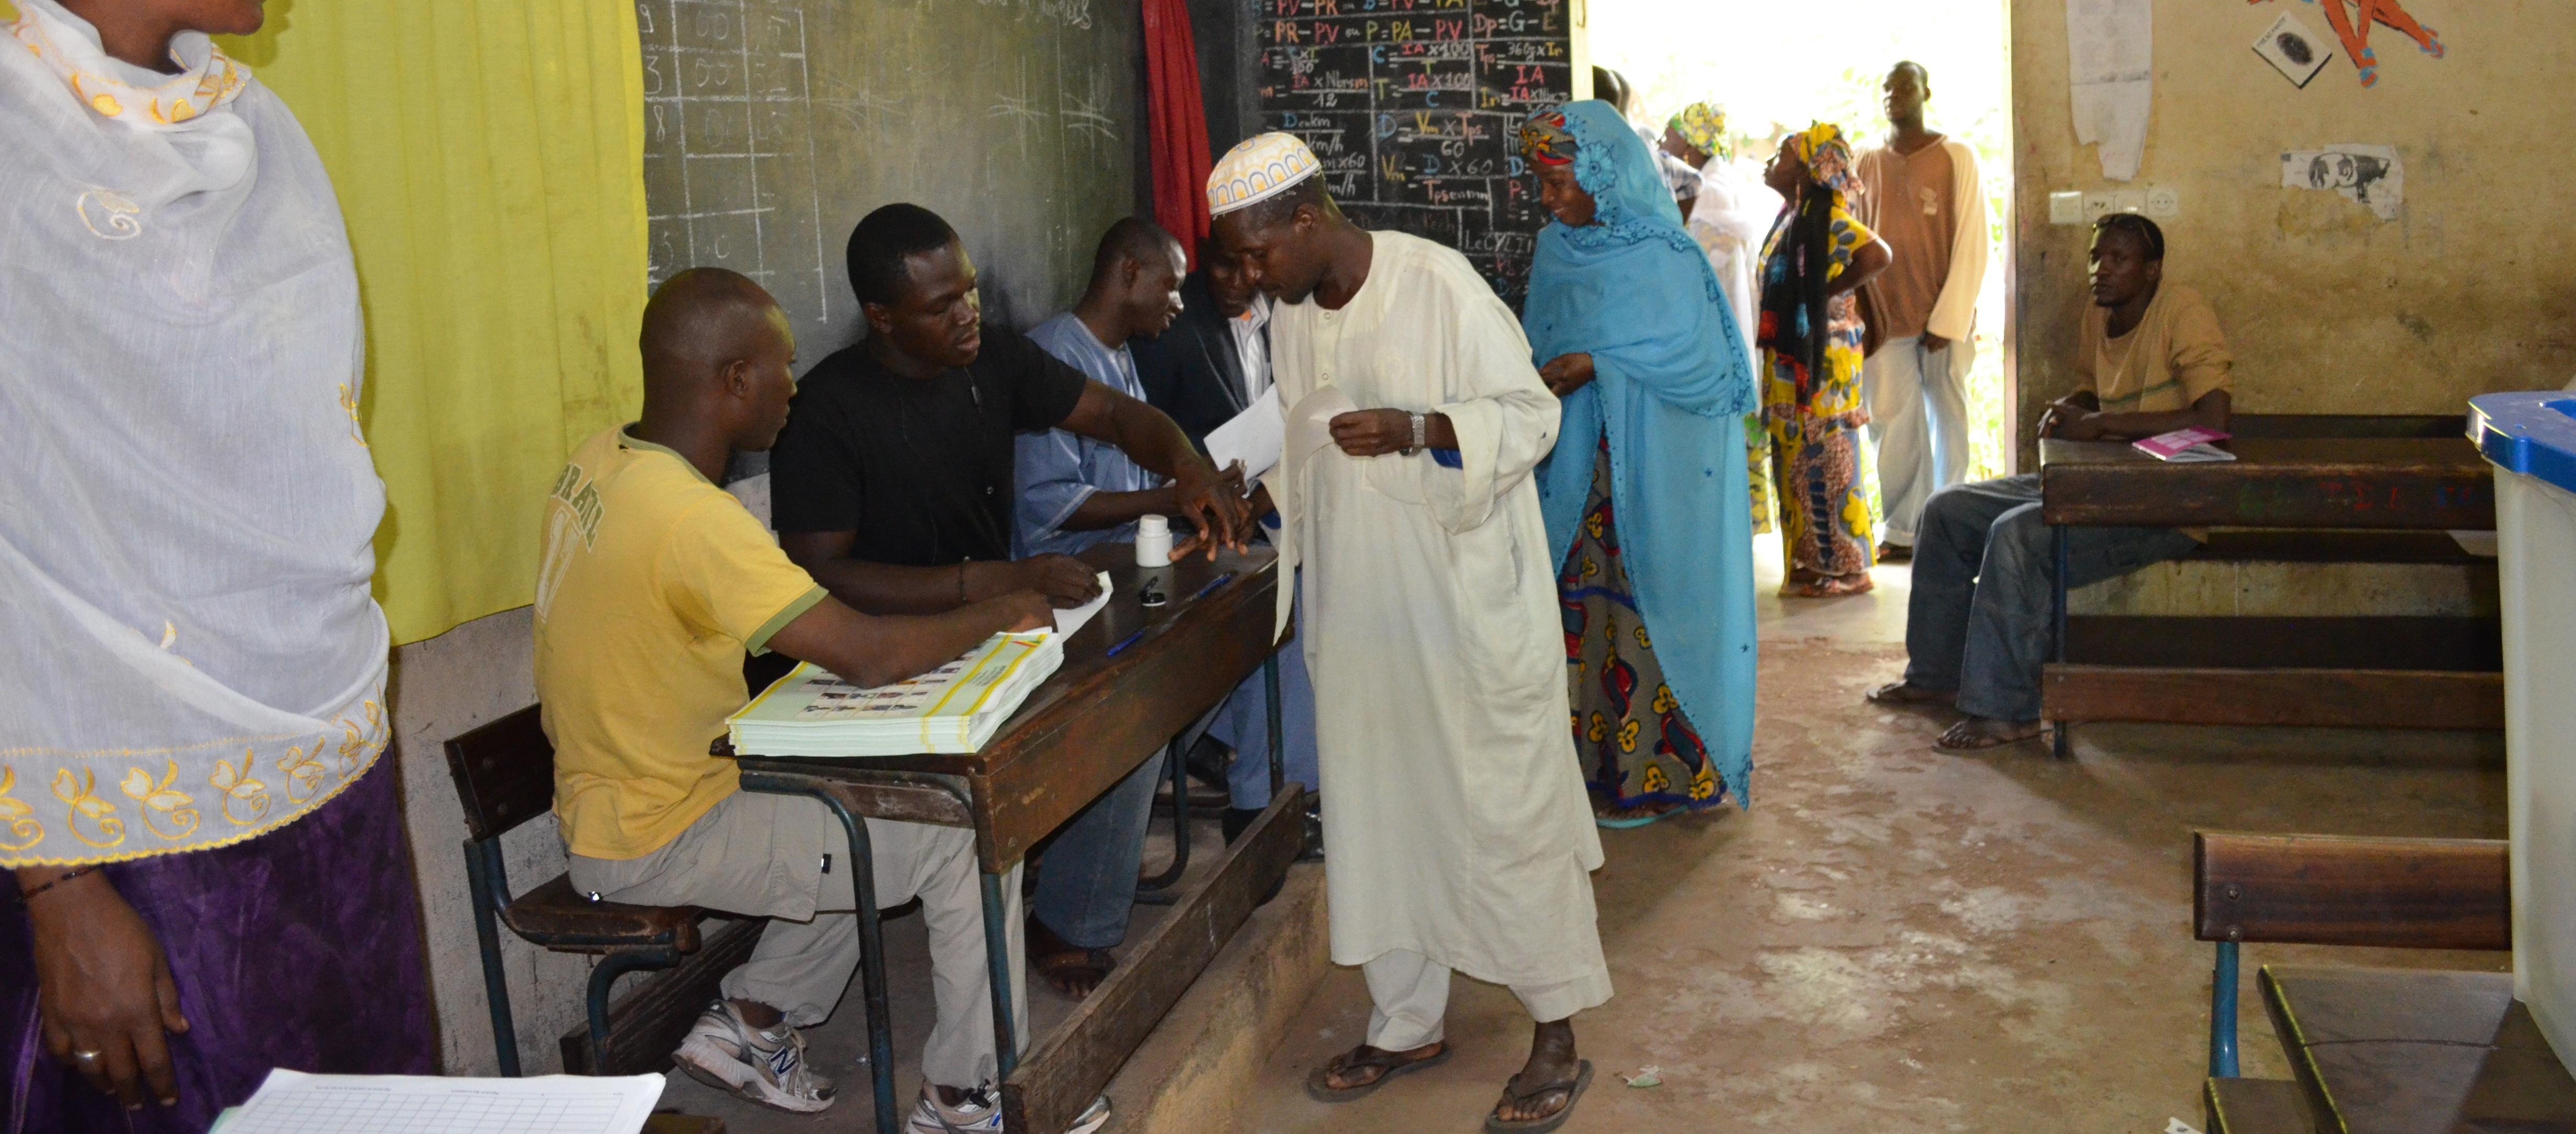 Voter getting inked in the 2013 presidential election in Mali